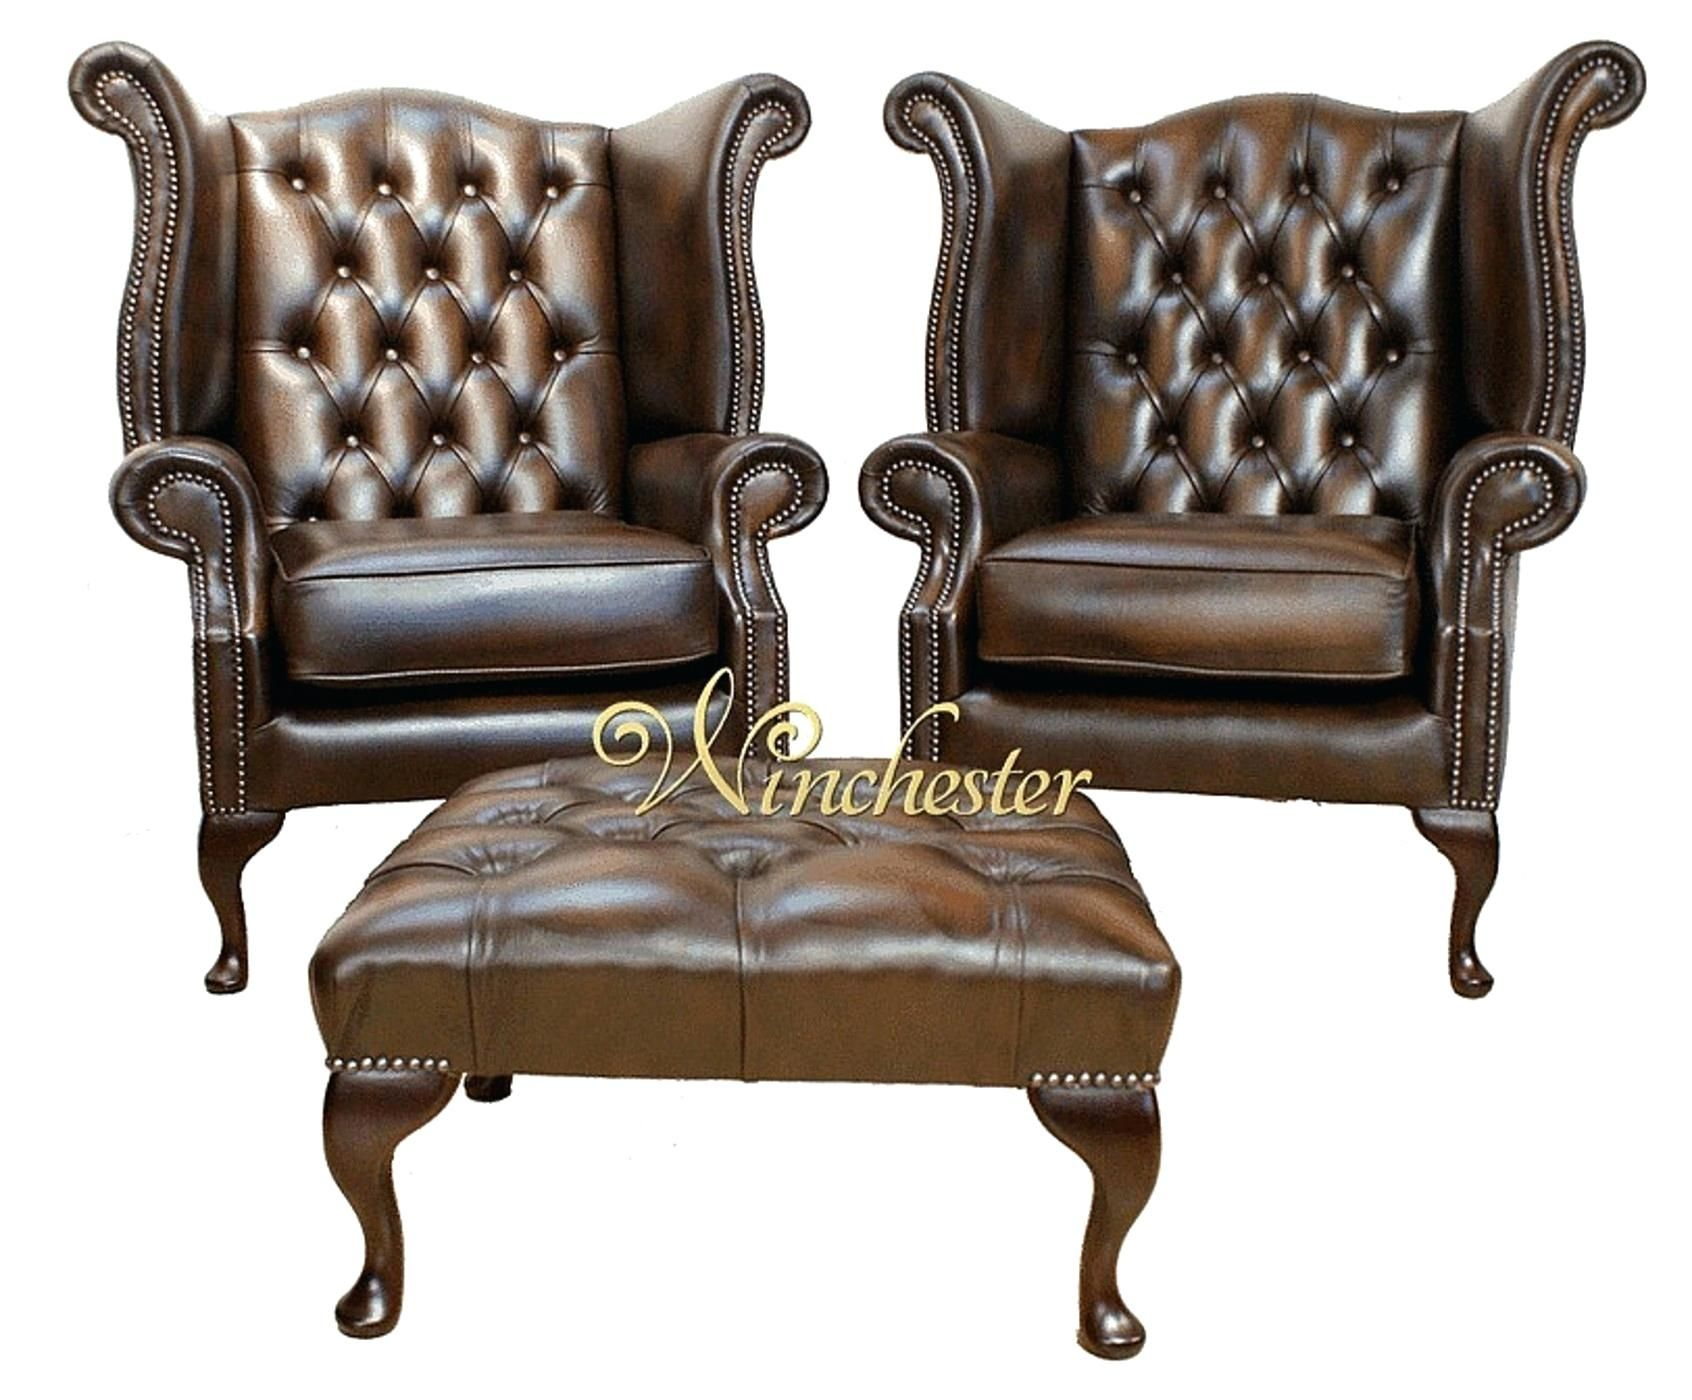 Chesterfield Sessel Couch Sofa Chesterfield Stühle Akzent Stuhl Wing